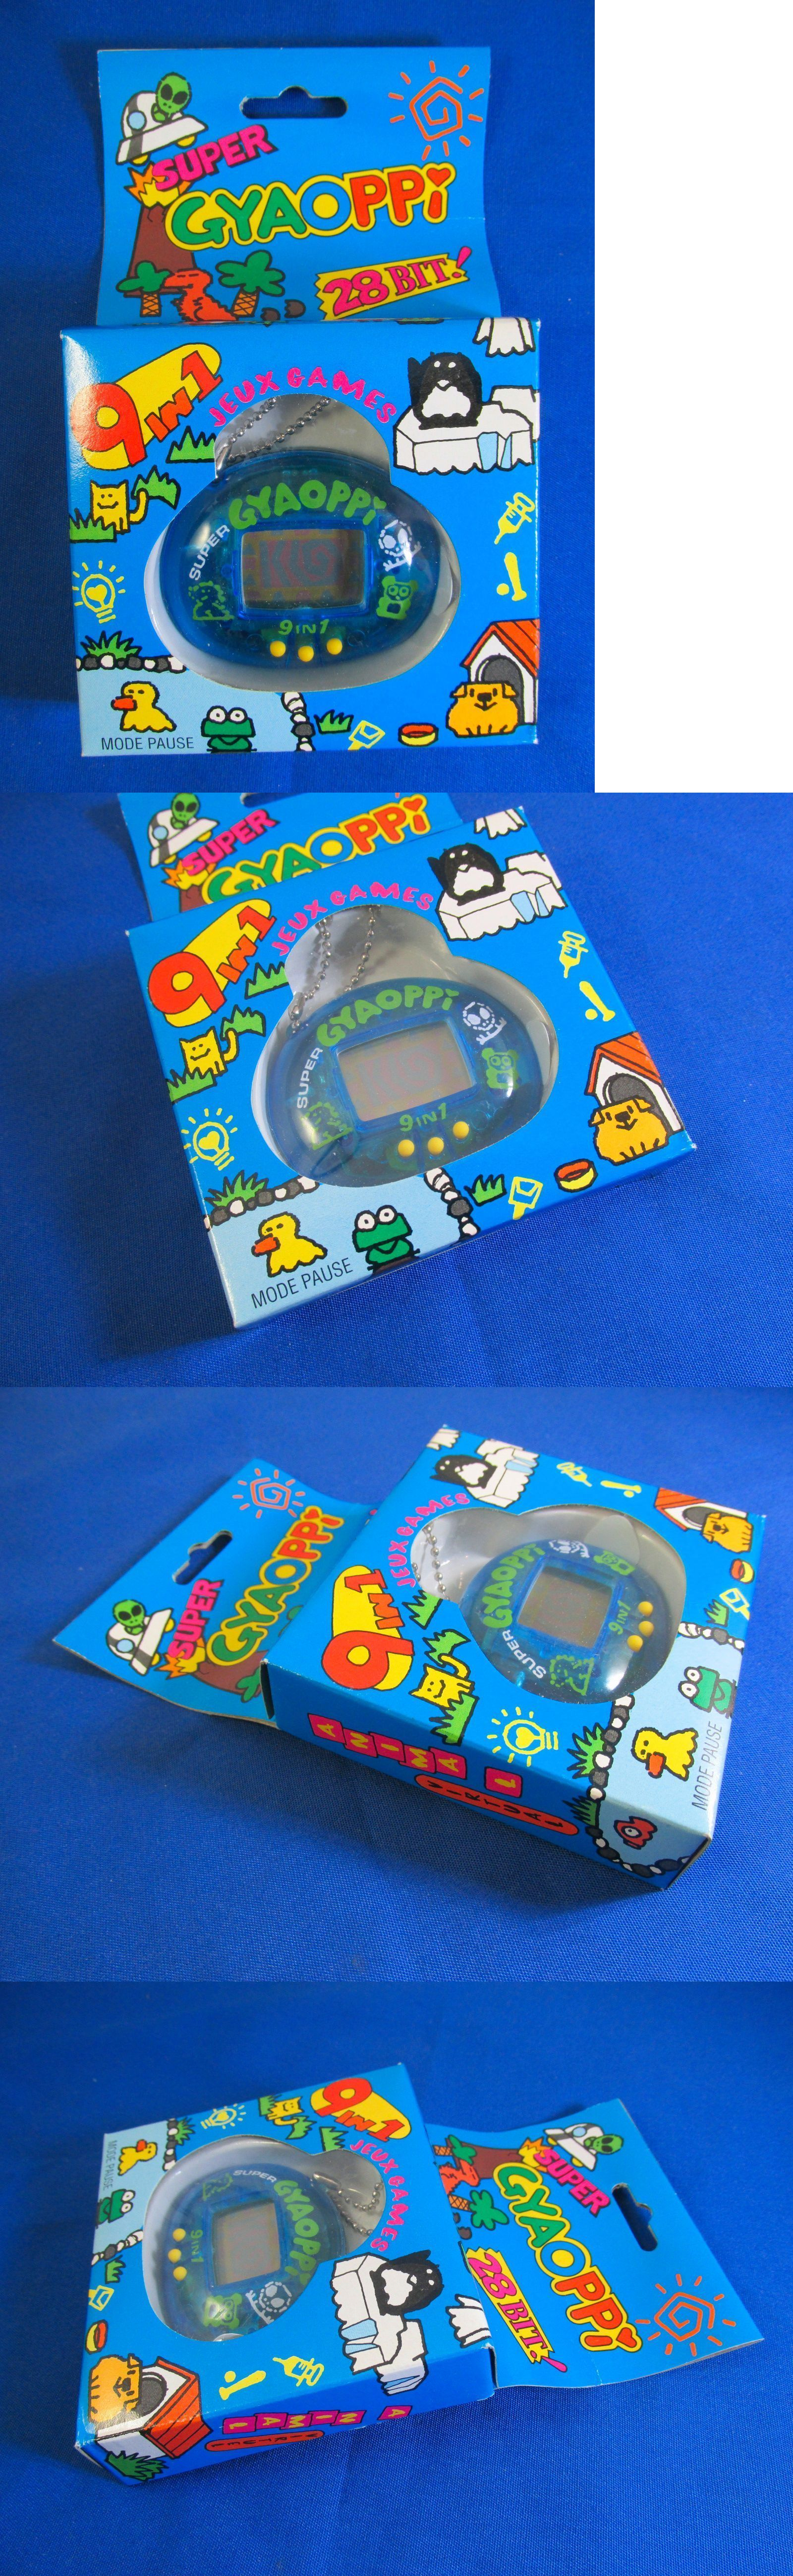 Electronic and Interactive 1082 Super Gyaoppi 9 In 1